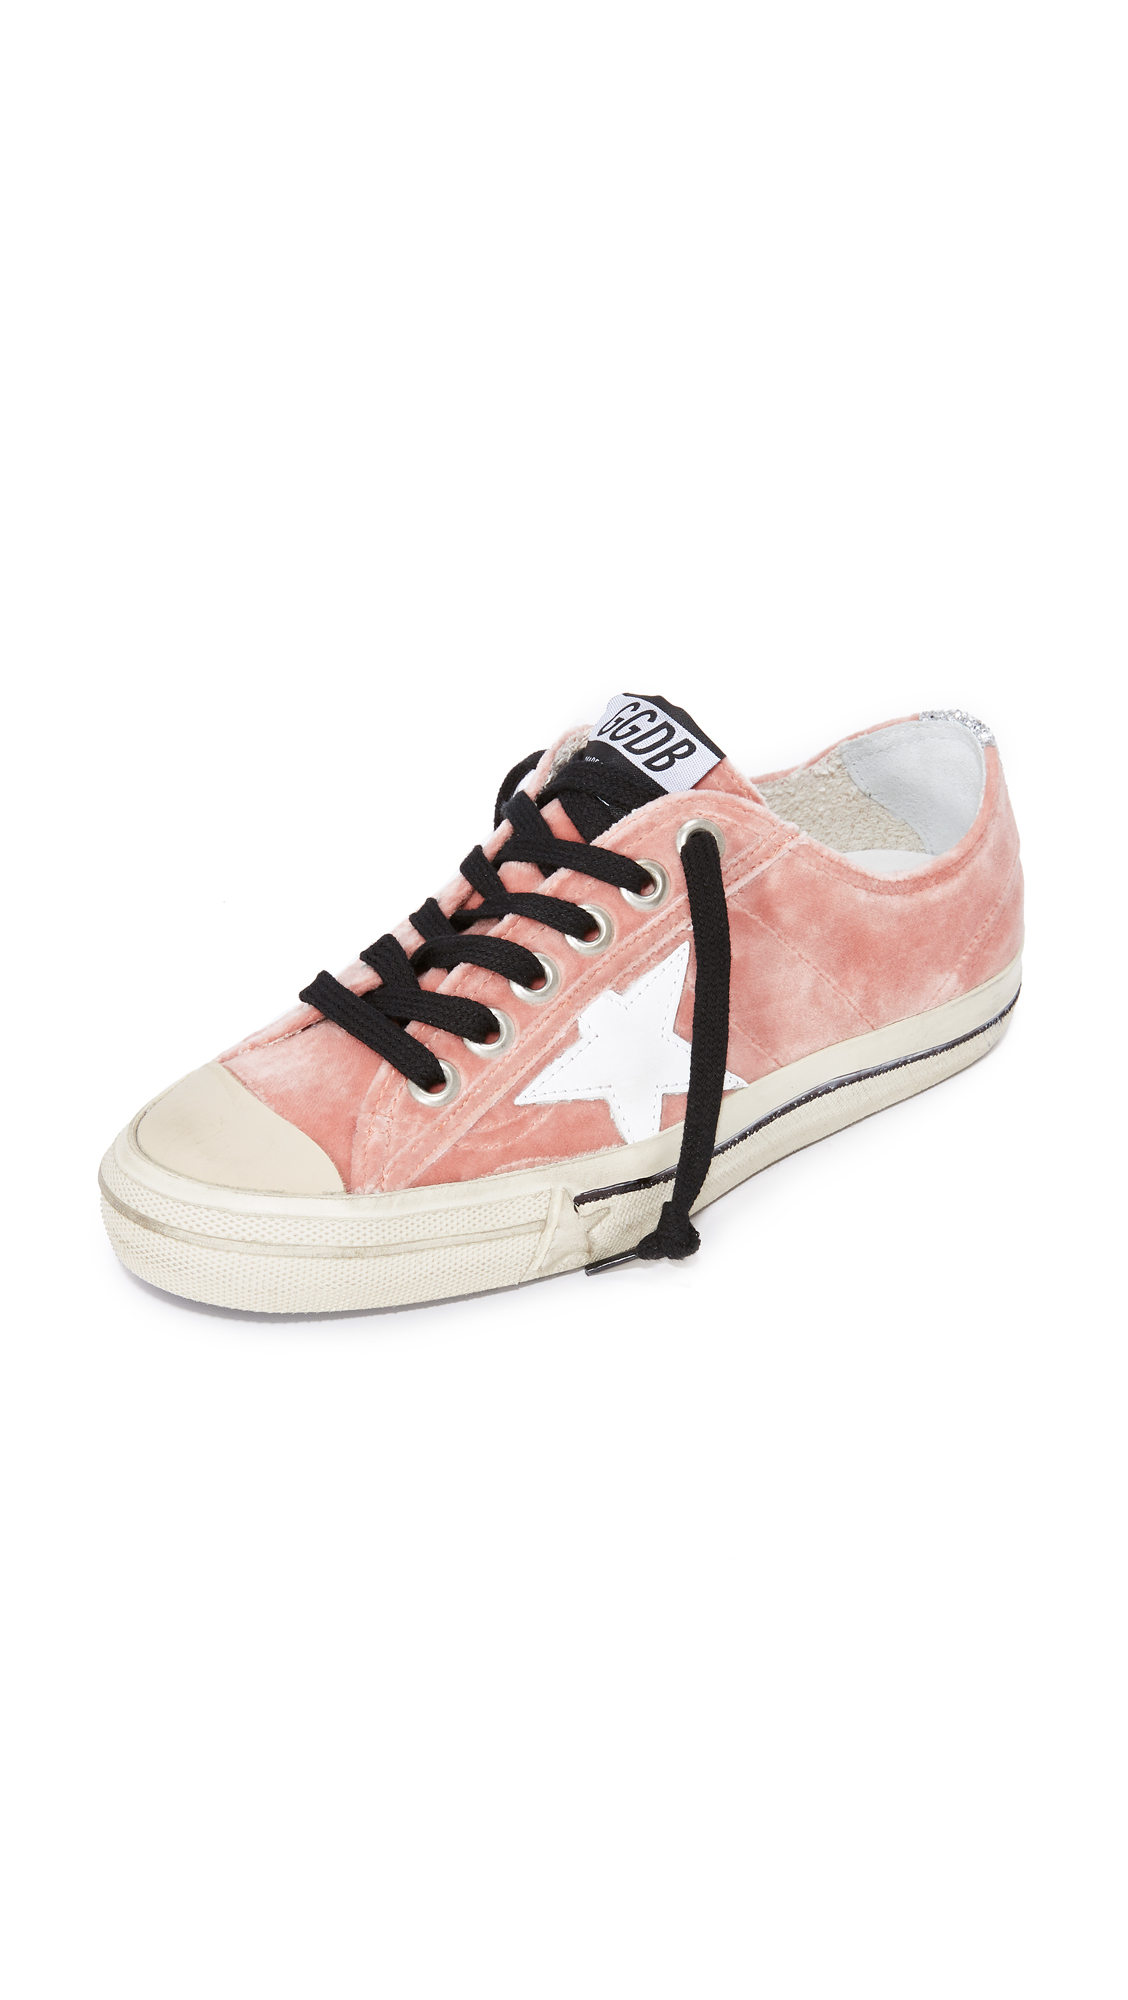 Golden Goose V-Star Velvet Sneakers - Velvet Rose/White